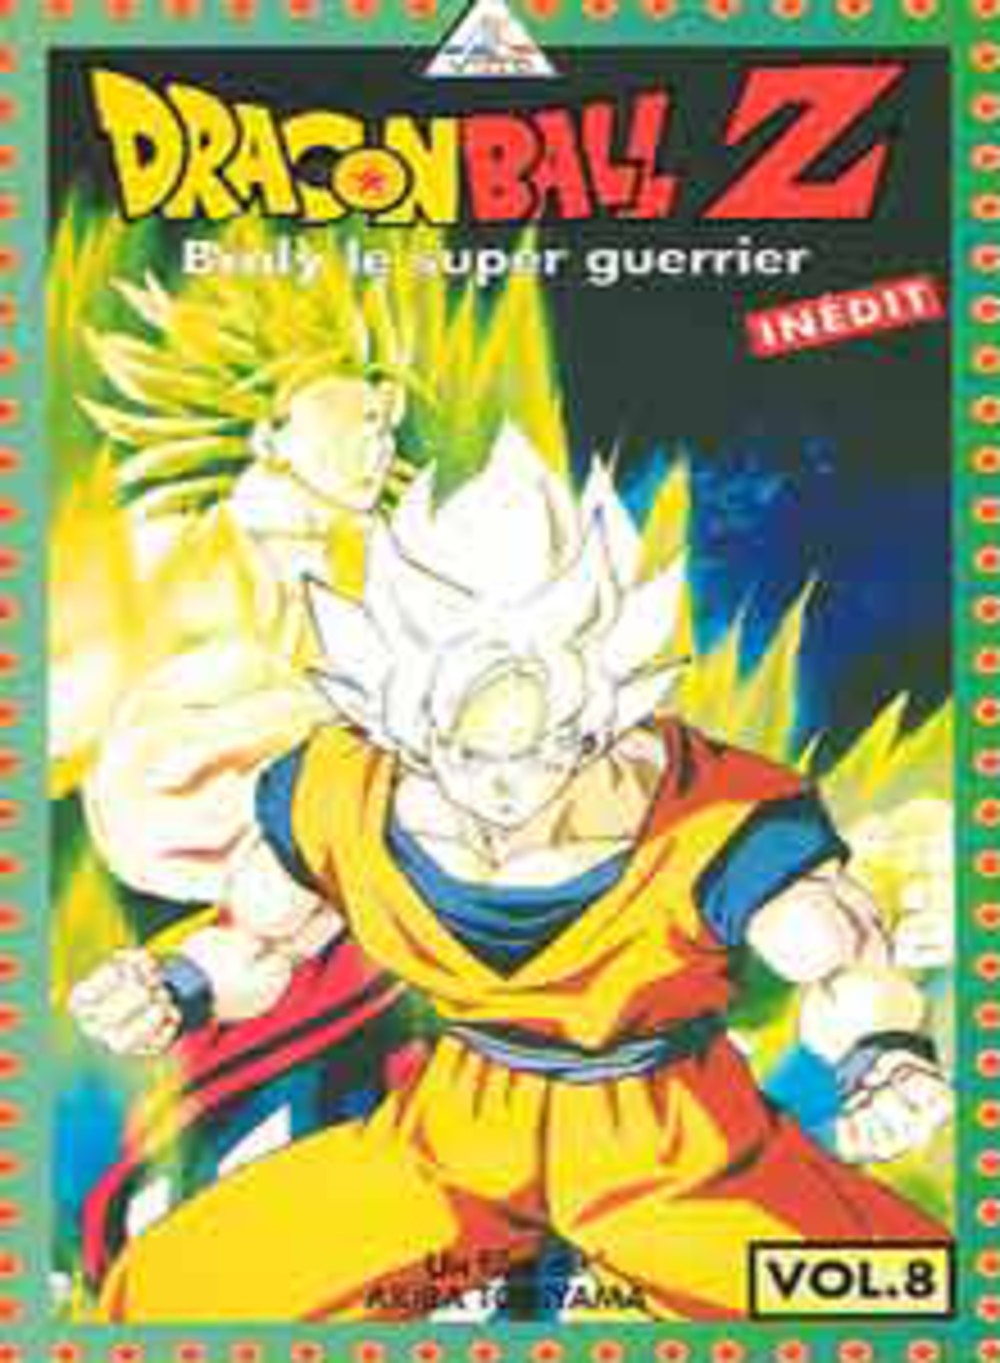 Retro holidays zone 2015 another retro world - Dragon ball z broly le super guerrier vf ...